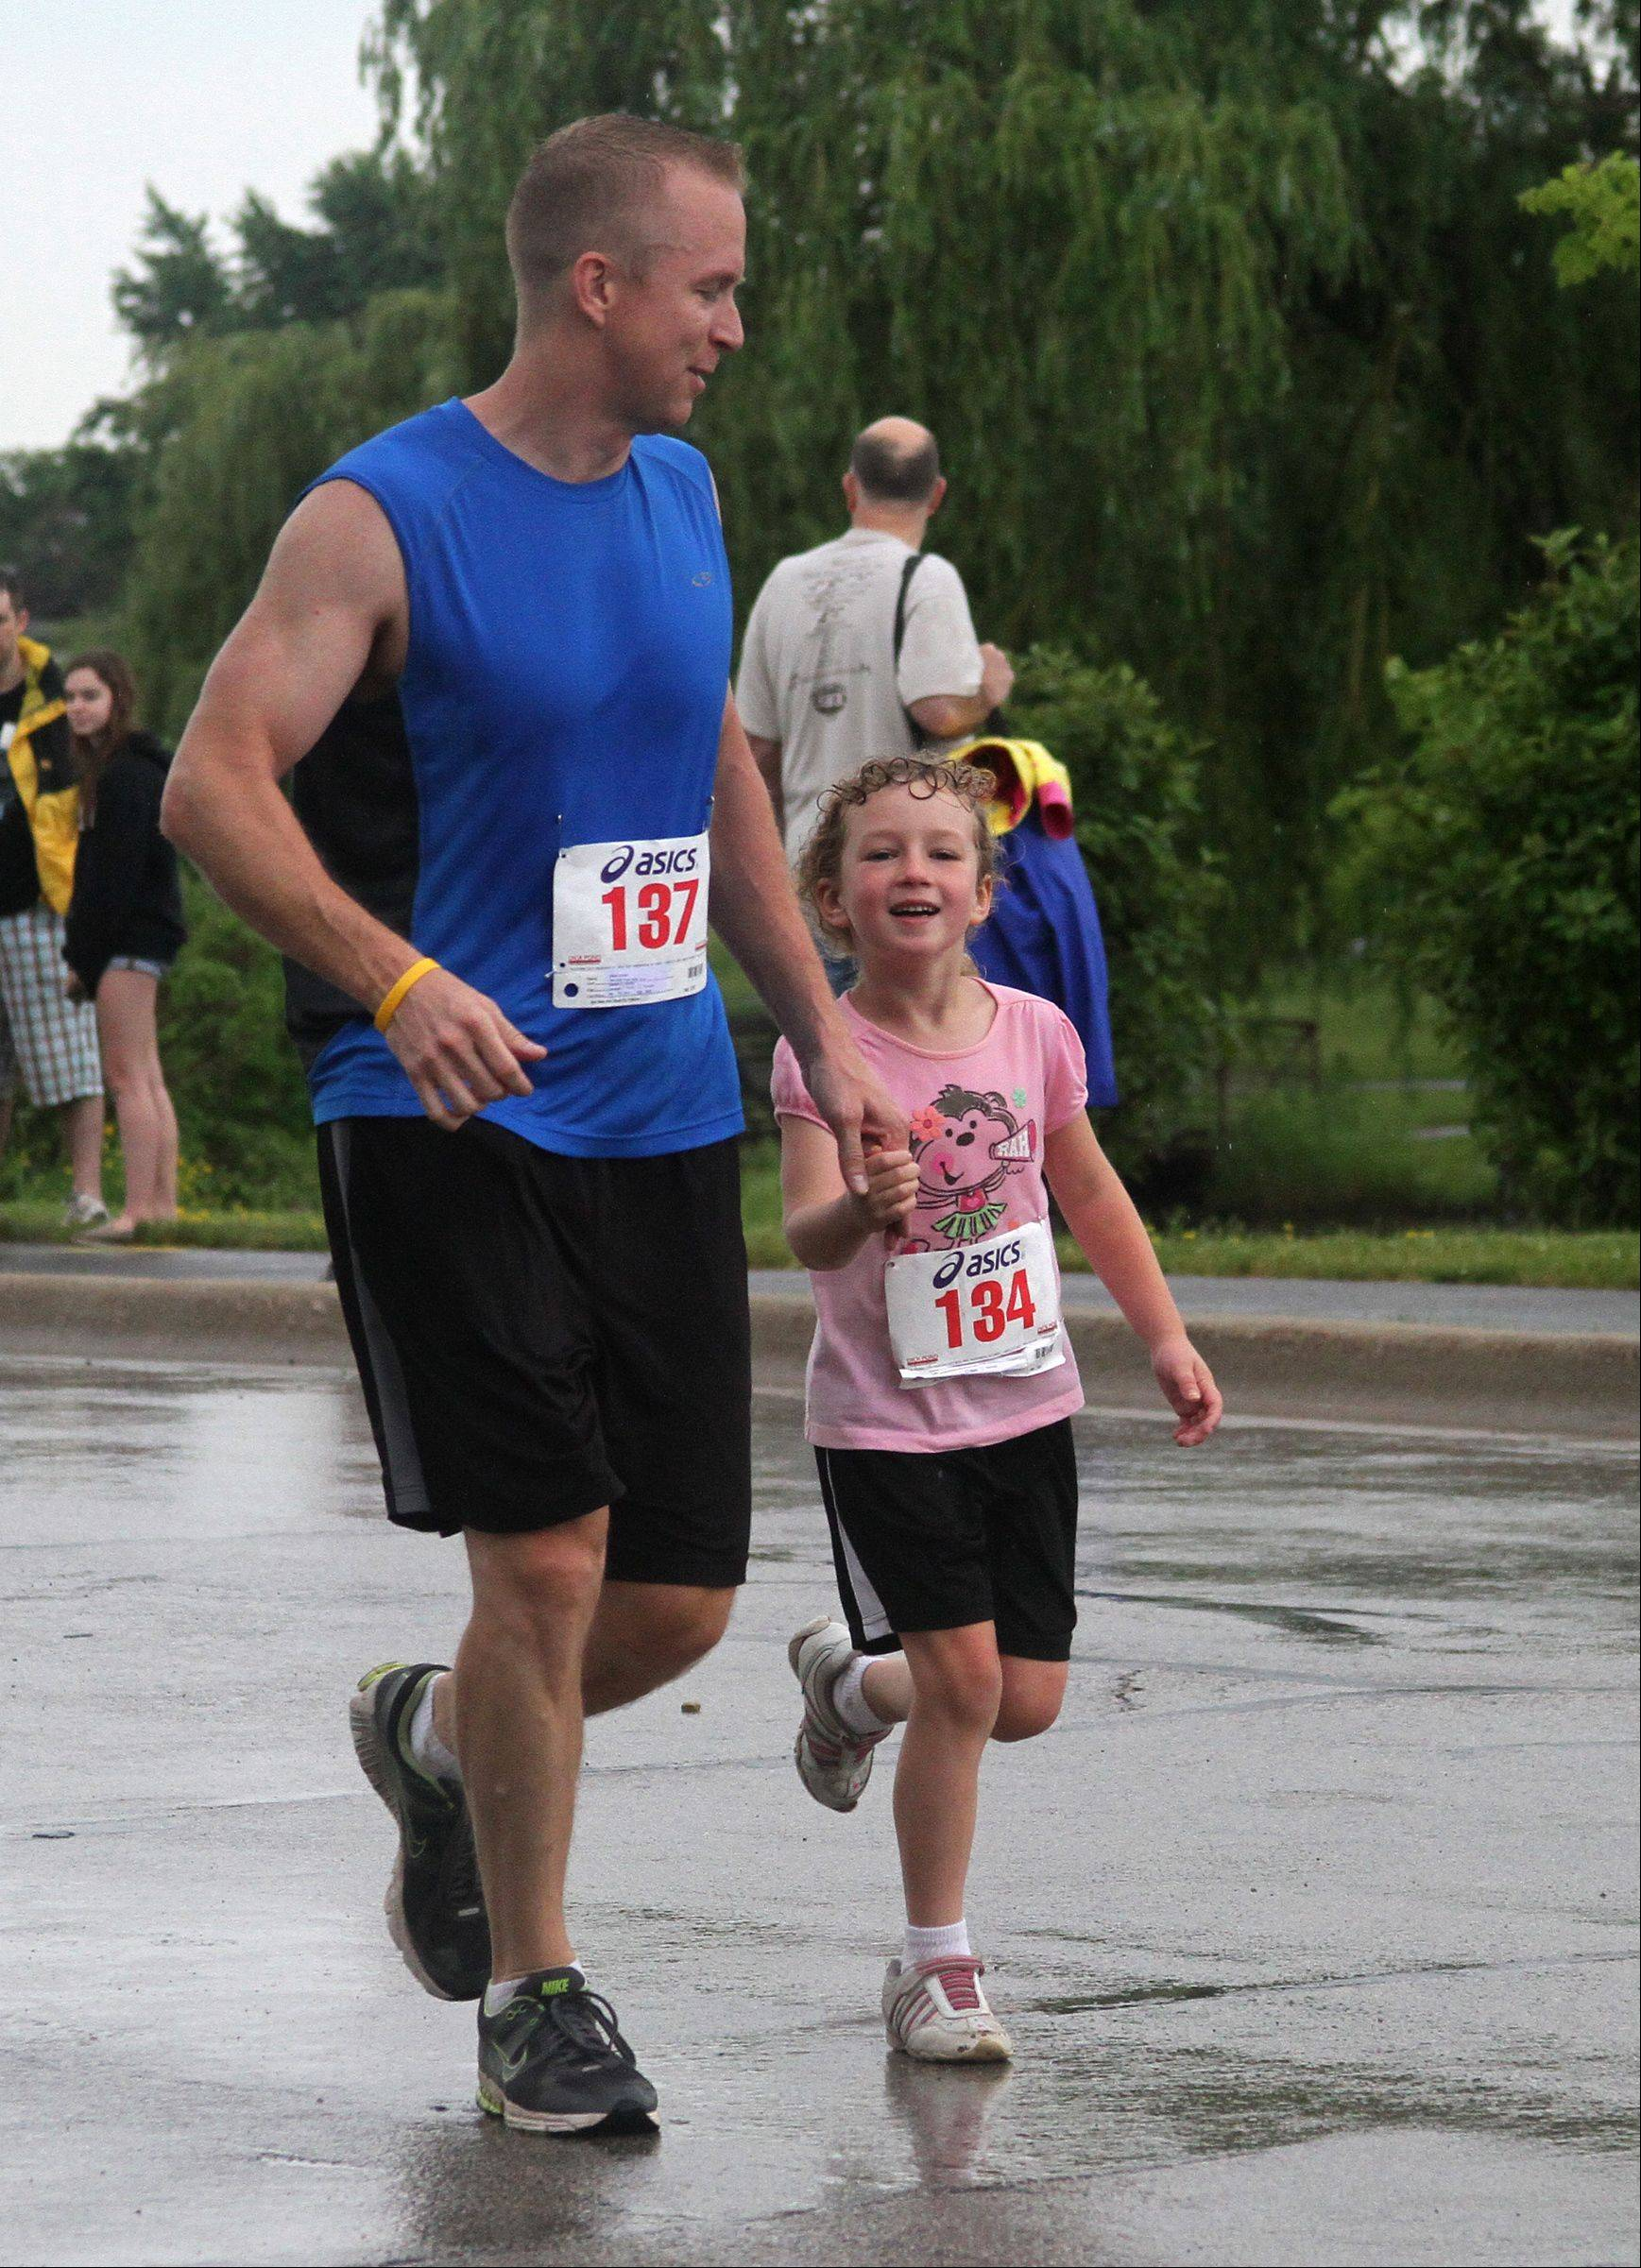 Steve and Chloe Curran of Bartlett run into the finish line at the 10th annual Bud�s Run 5K at the Ross Ferraro Town Center in Carol Stream on Saturday. The father-daughter pair ran the 5K together, along with the rest of their family. It was Chloe�s first 5K.